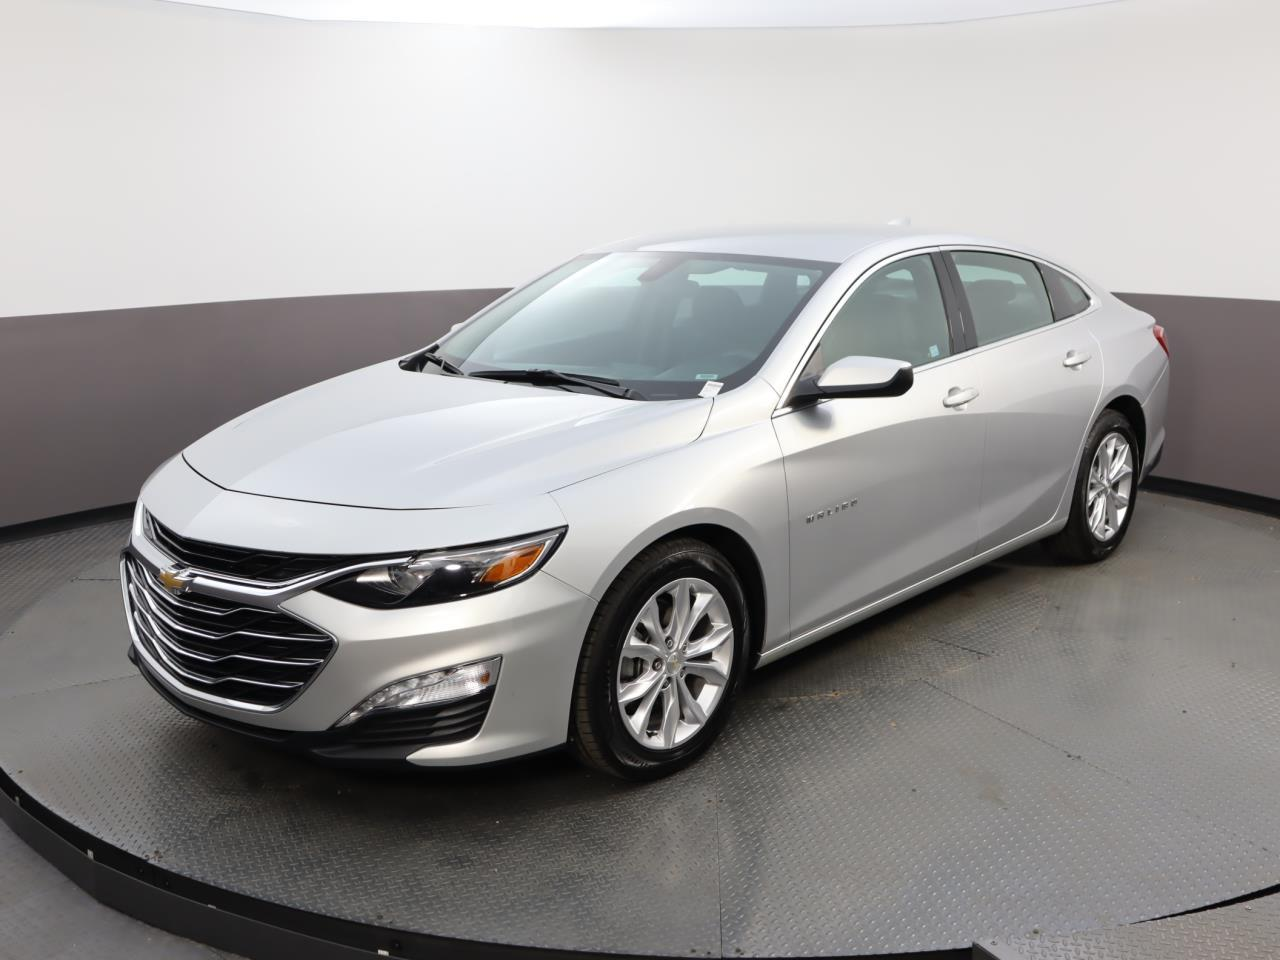 Used CHEVROLET MALIBU 2020 MIAMI LT